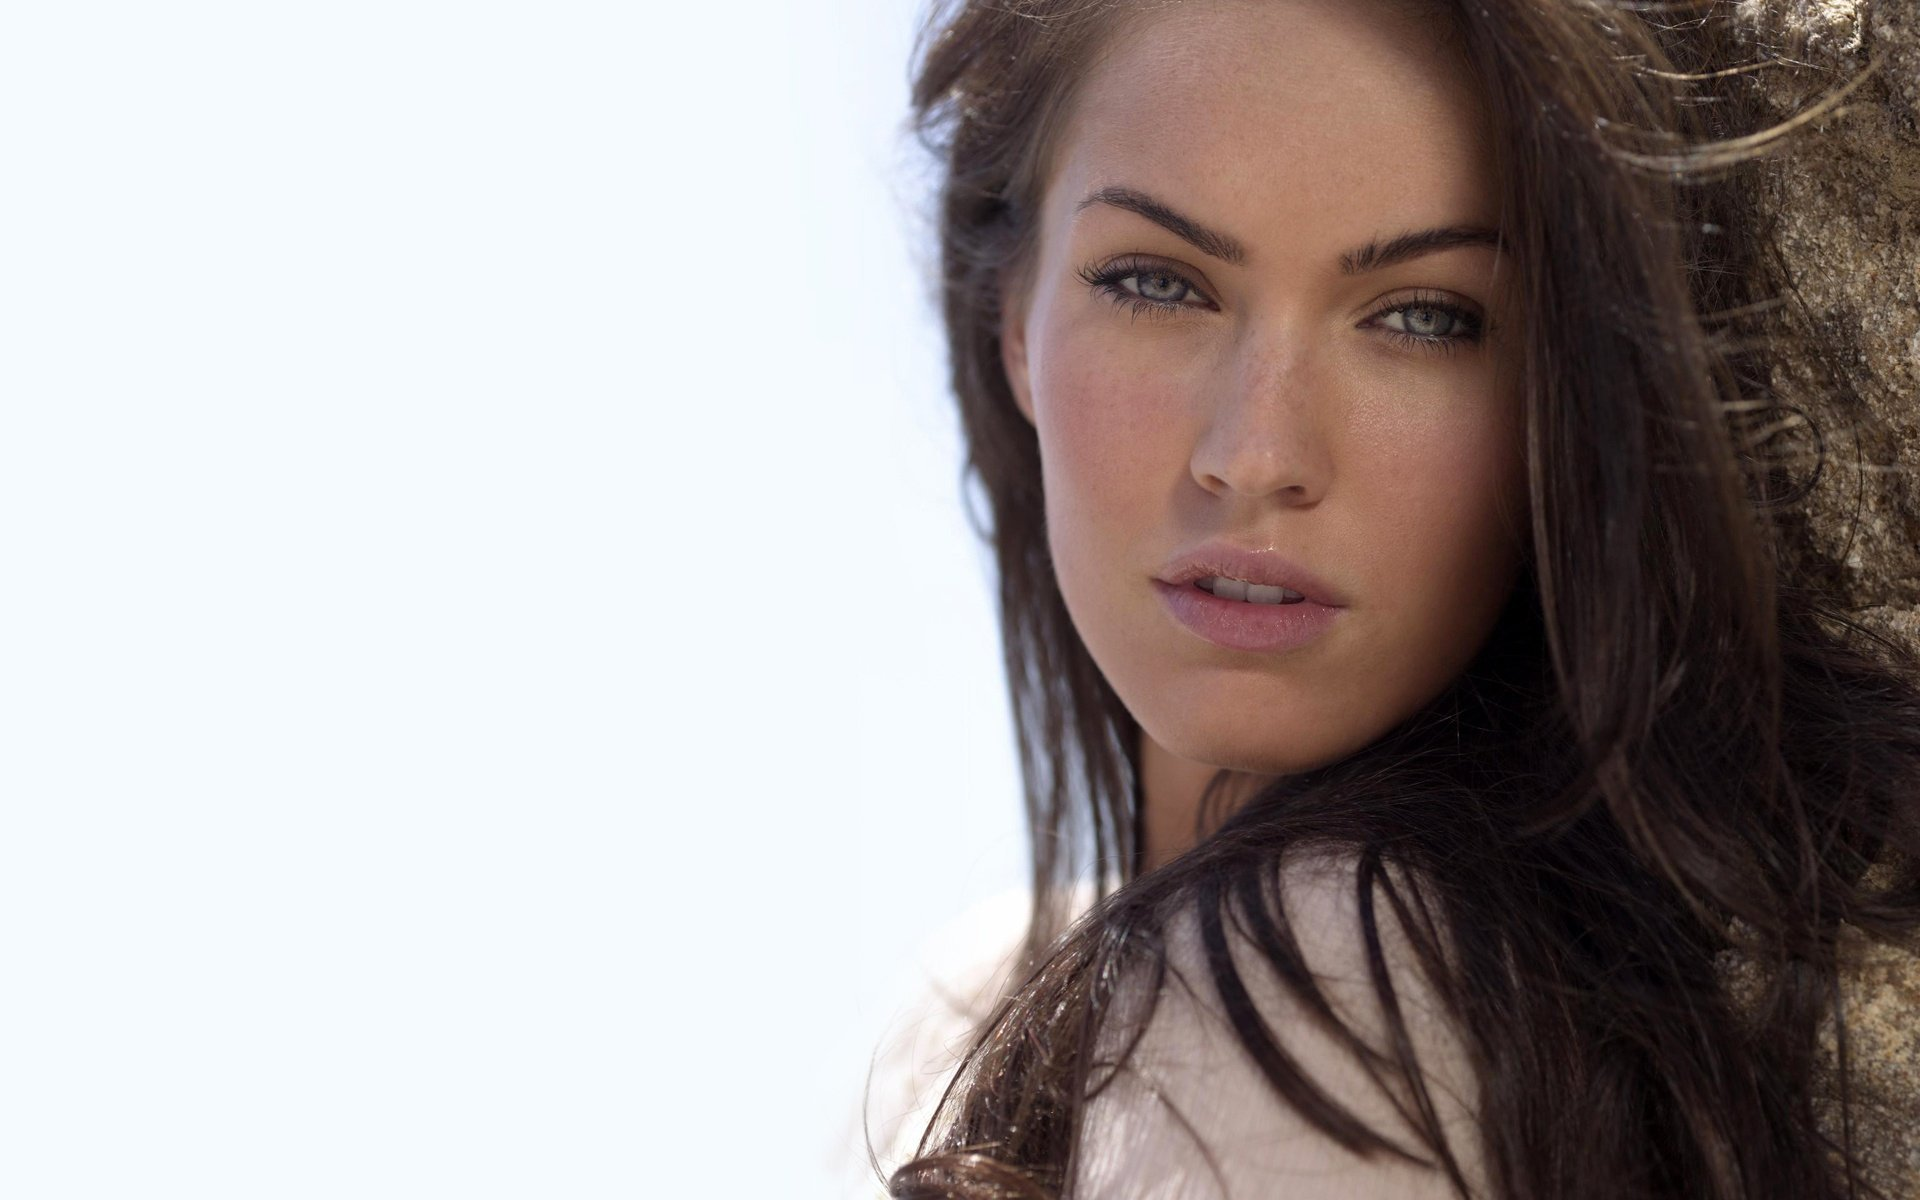 megan fox full hd wallpaper and background image | 1920x1200 | id:224990